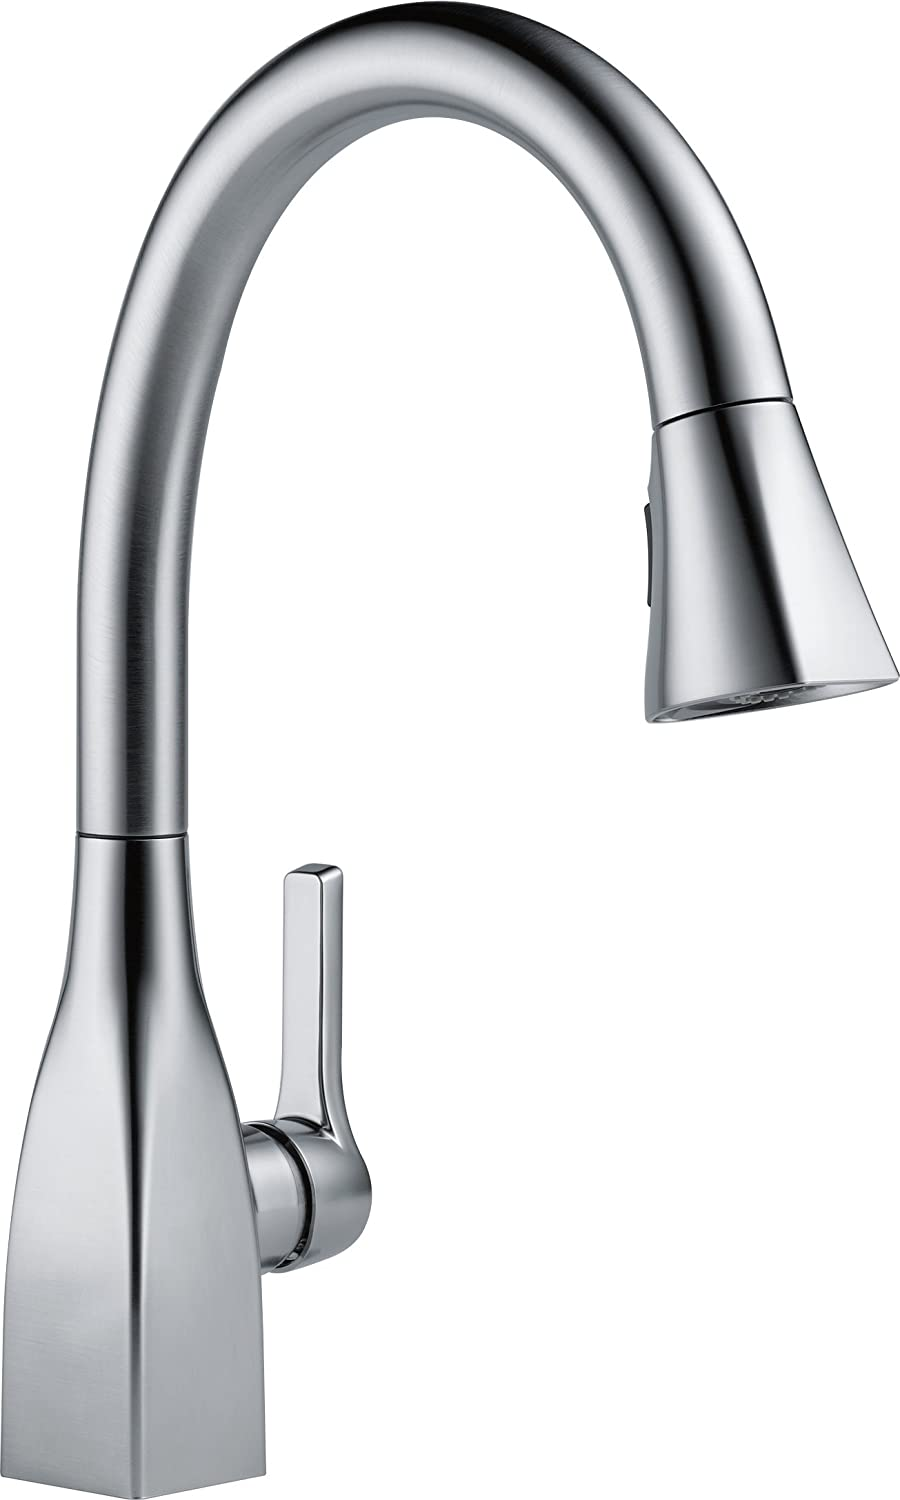 Amazon.com: Delta Faucet 9183-AR-DST Mateo Single Handle Pull-Down ...